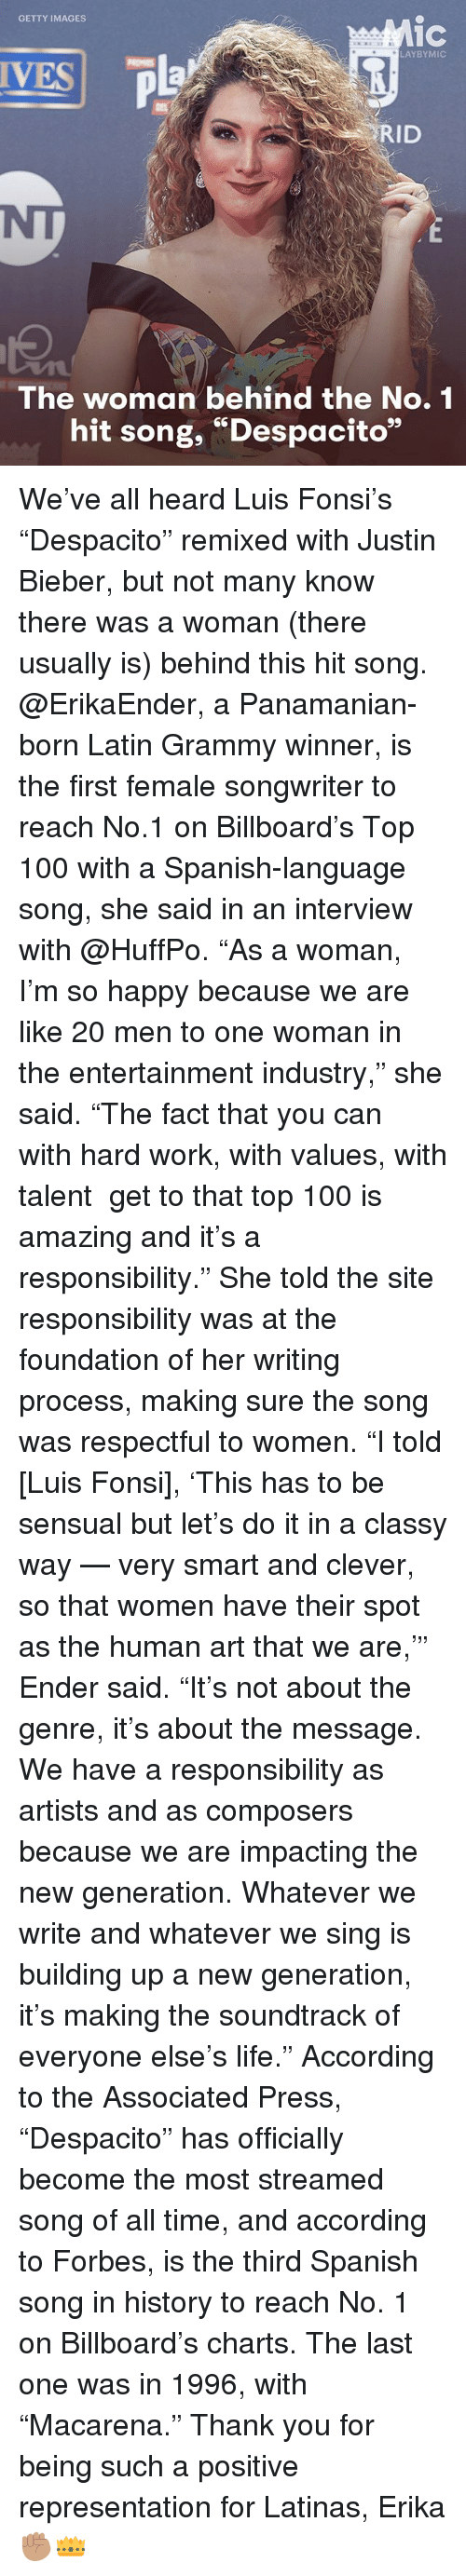 """Anaconda, Billboard, and Justin Bieber: GETTY IMAGES  1C  LAYBYMIC  VESP  RID  The woman behind the No. 1  hit song, """"Despacito"""" We've all heard Luis Fonsi's """"Despacito"""" remixed with Justin Bieber, but not many know there was a woman (there usually is) behind this hit song. @ErikaEnder, a Panamanian-born Latin Grammy winner, is the first female songwriter to reach No.1 on Billboard's Top 100 with a Spanish-language song, she said in an interview with @HuffPo. """"As a woman, I'm so happy because we are like 20 men to one woman in the entertainment industry,"""" she said. """"The fact that you can ― with hard work, with values, with talent ― get to that top 100 is amazing and it's a responsibility."""" She told the site responsibility was at the foundation of her writing process, making sure the song was respectful to women. """"I told [Luis Fonsi], 'This has to be sensual but let's do it in a classy way — very smart and clever, so that women have their spot as the human art that we are,'"""" Ender said. """"It's not about the genre, it's about the message. We have a responsibility as artists and as composers because we are impacting the new generation. Whatever we write and whatever we sing is building up a new generation, it's making the soundtrack of everyone else's life."""" According to the Associated Press, """"Despacito"""" has officially become the most streamed song of all time, and according to Forbes, is the third Spanish song in history to reach No. 1 on Billboard's charts. The last one was in 1996, with """"Macarena."""" Thank you for being such a positive representation for Latinas, Erika ✊🏽👑"""